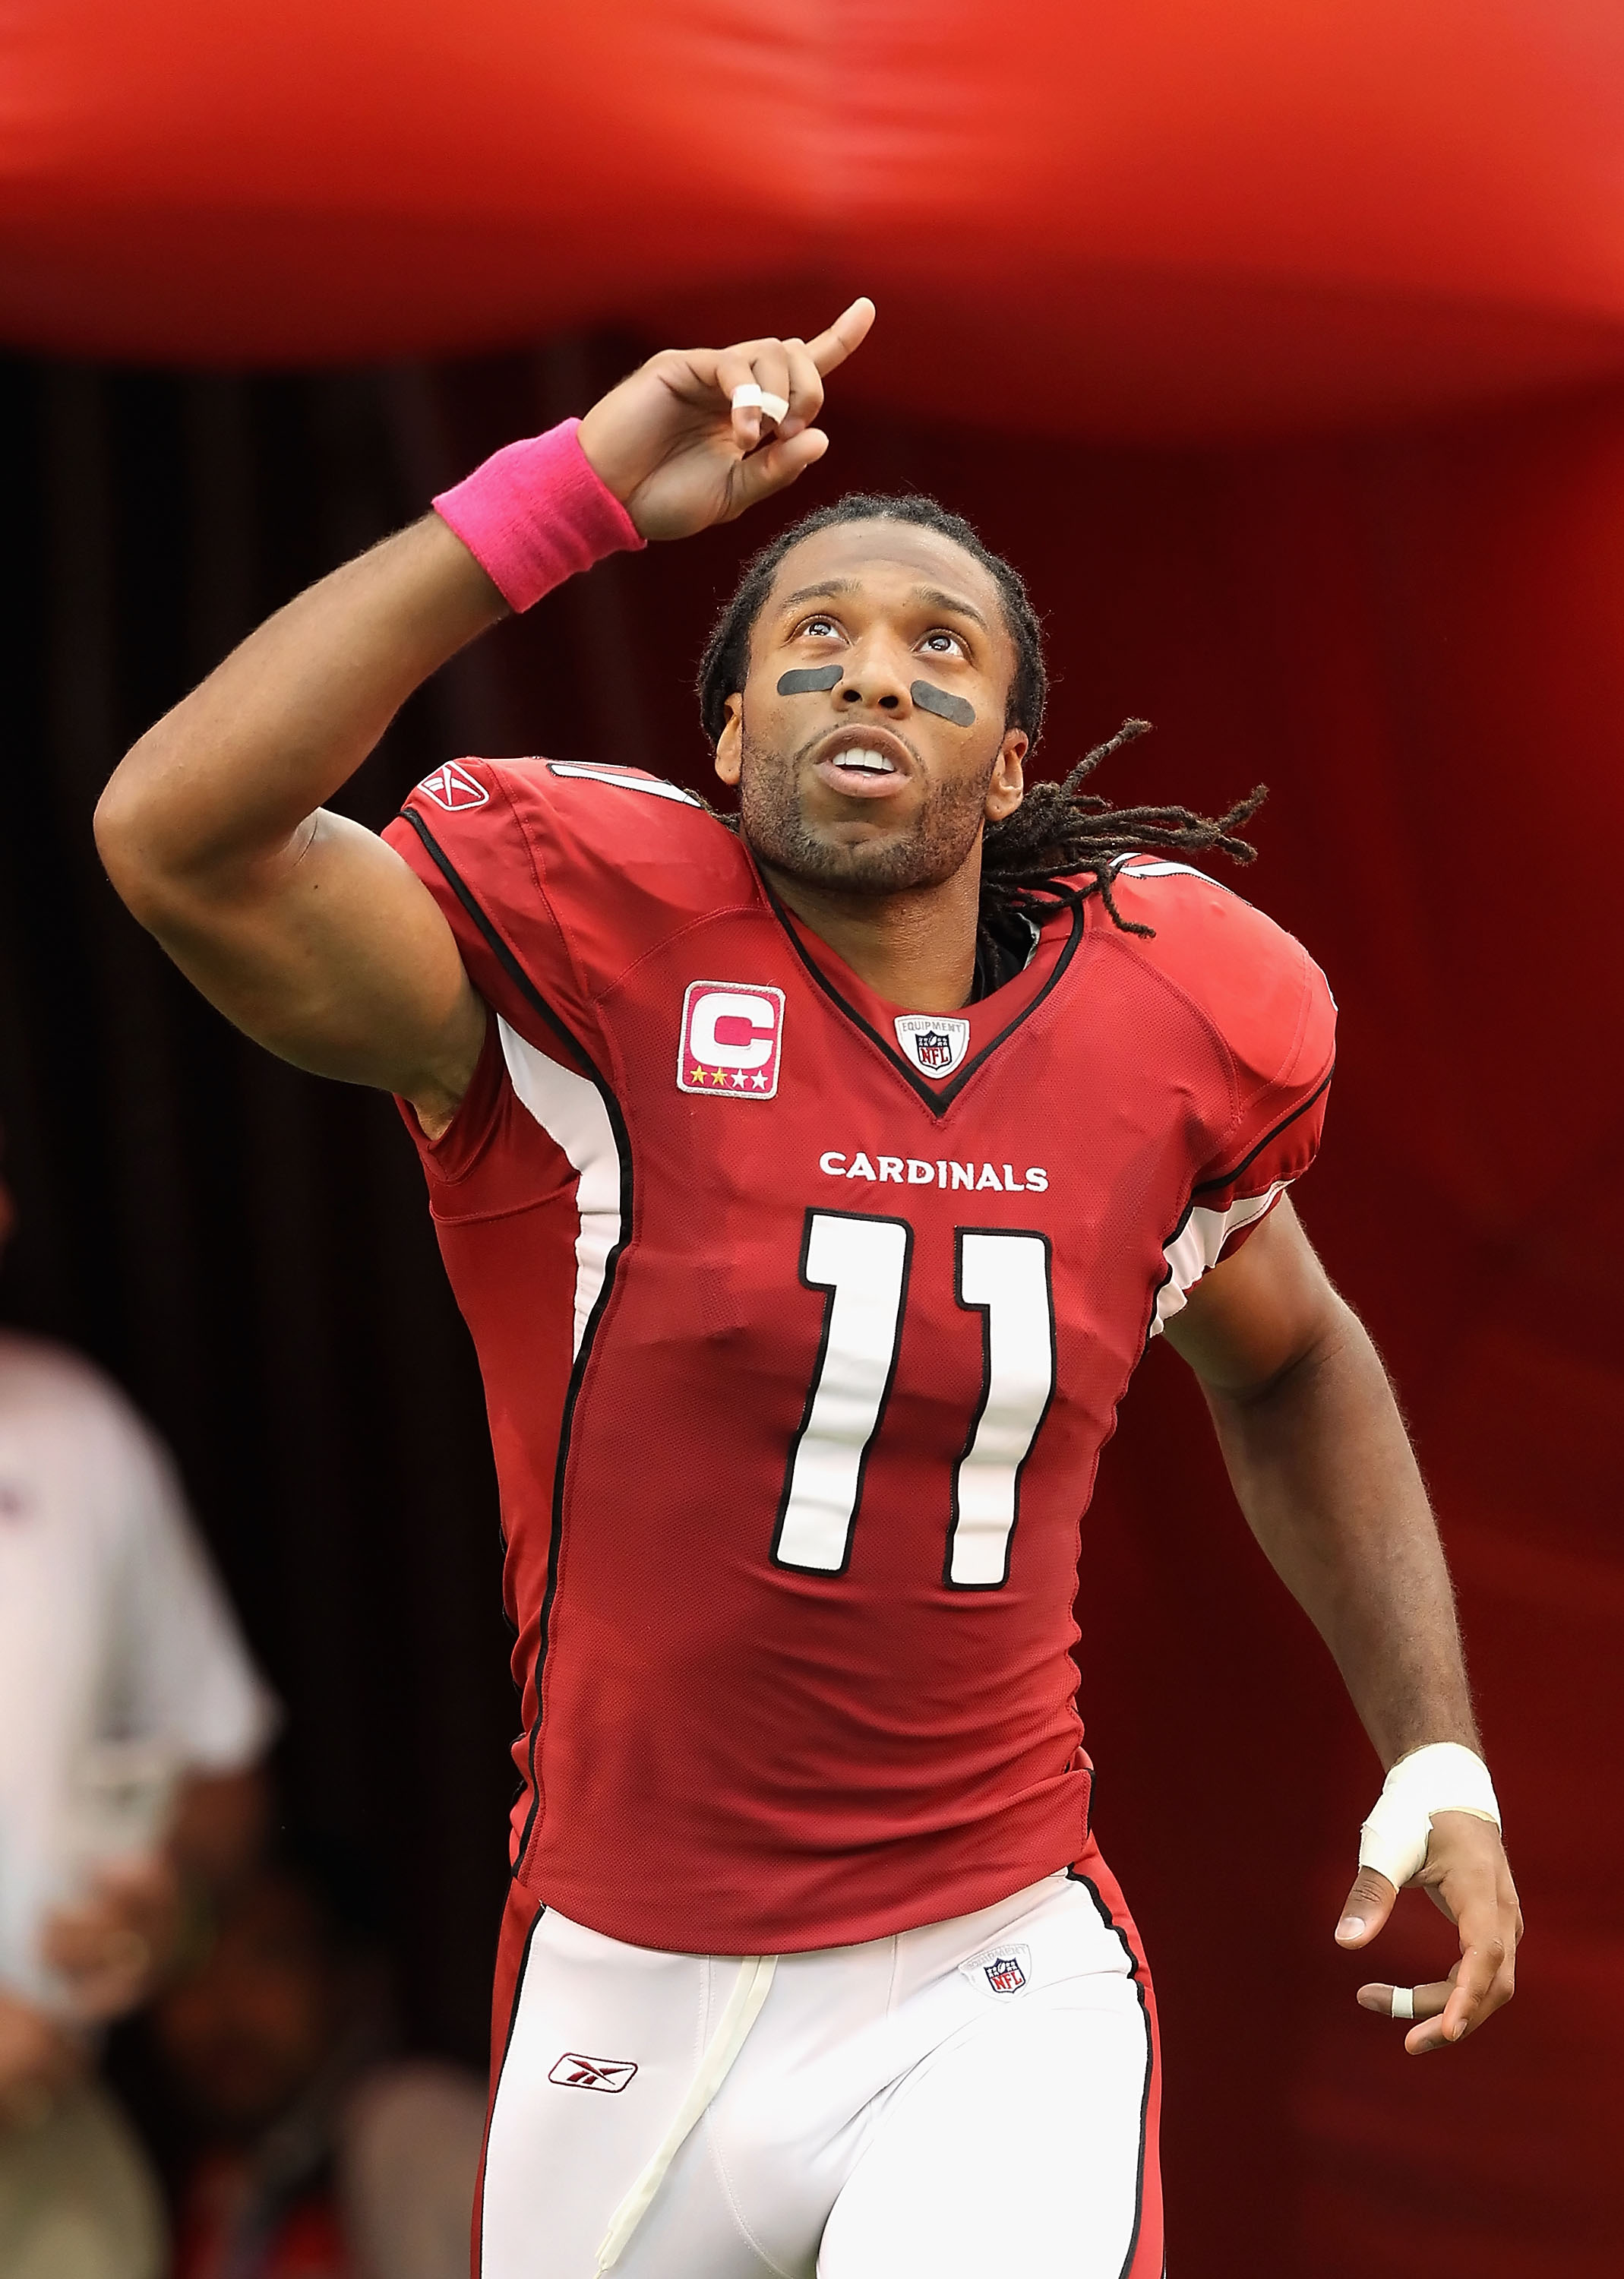 GLENDALE, AZ - OCTOBER 10:  Wide receiver Larry Fitzgerald #11 of the Arizona Cardinals runs onto the field during introductions to the NFL game against the New Orleans Saints at the University of Phoenix Stadium on October 10, 2010 in Glendale, Arizona.